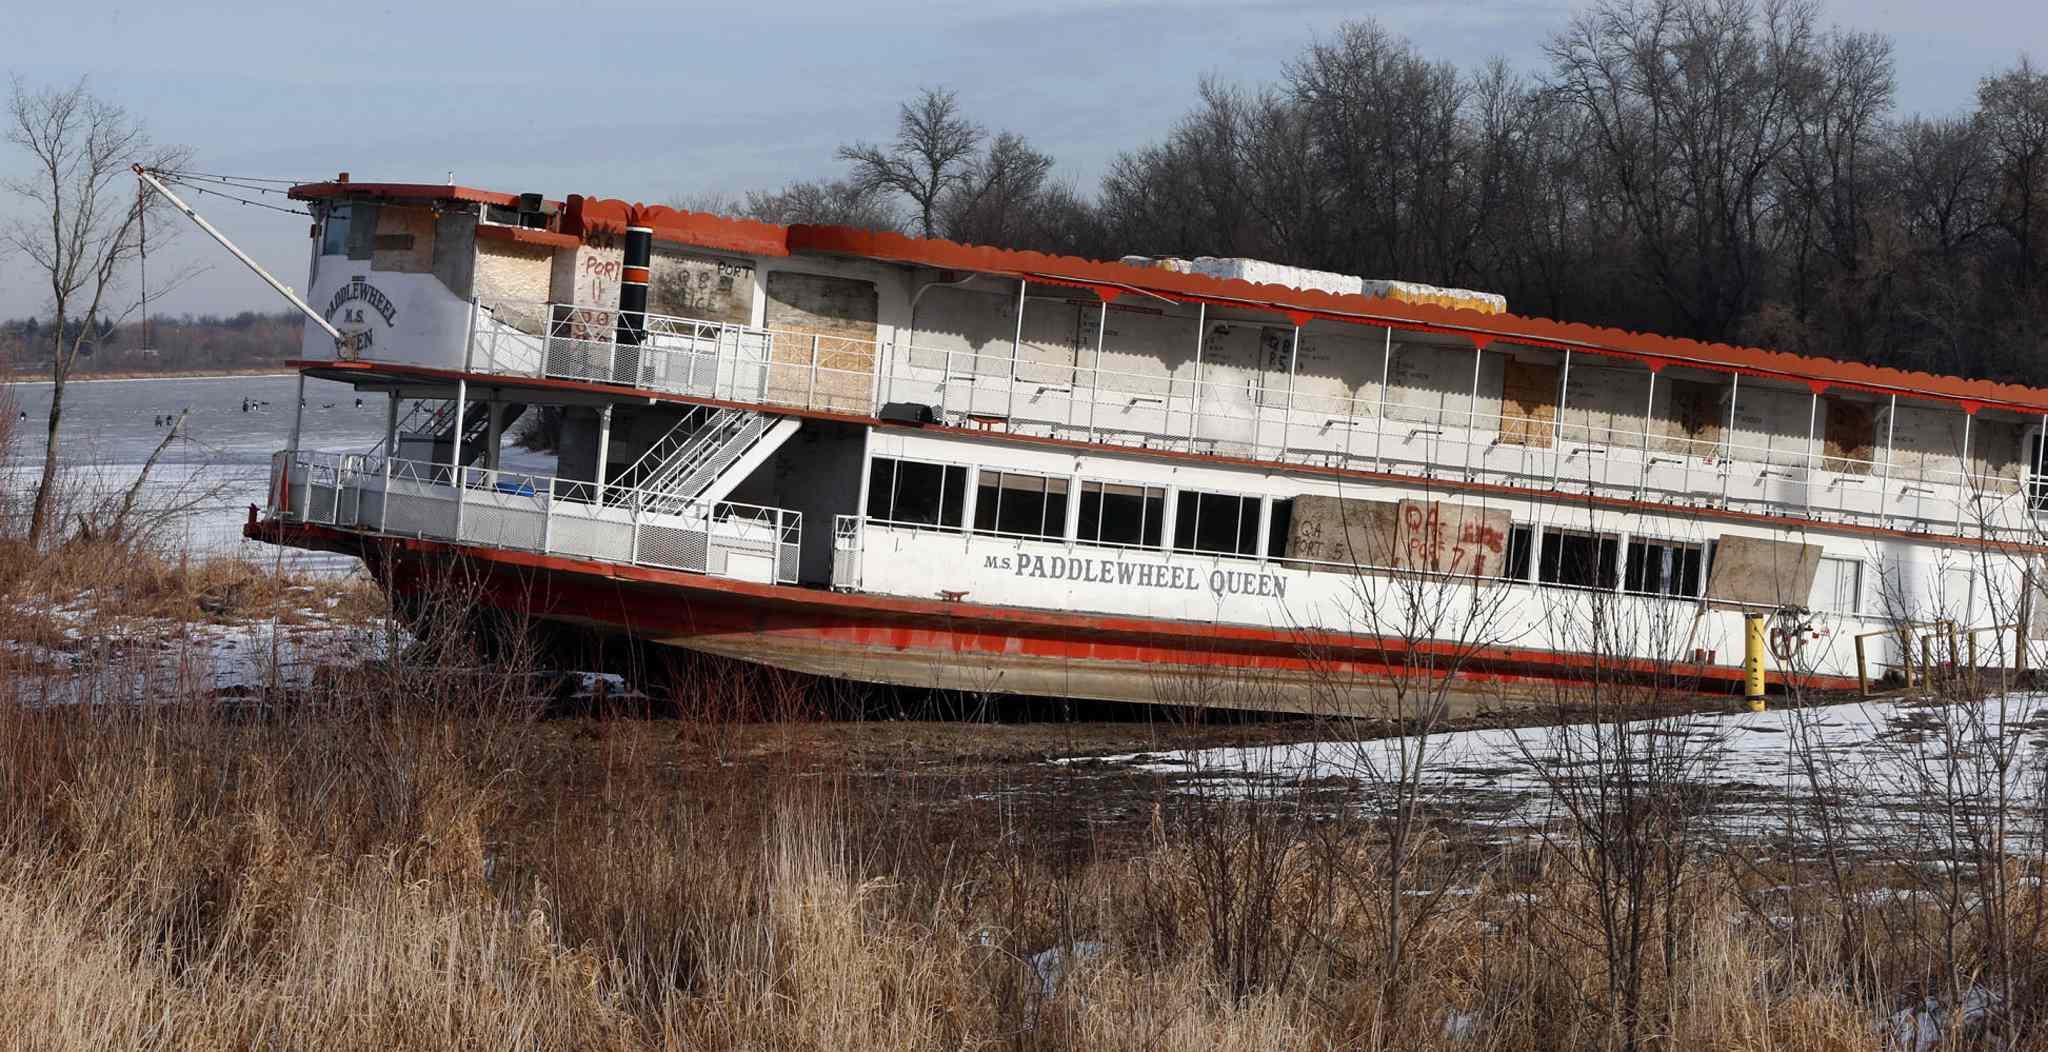 In 2015, the Paddlewheel Queen, the most stately of the Red River ships, is parked in a slough, awaiting to be dismantled and converted into a barge.